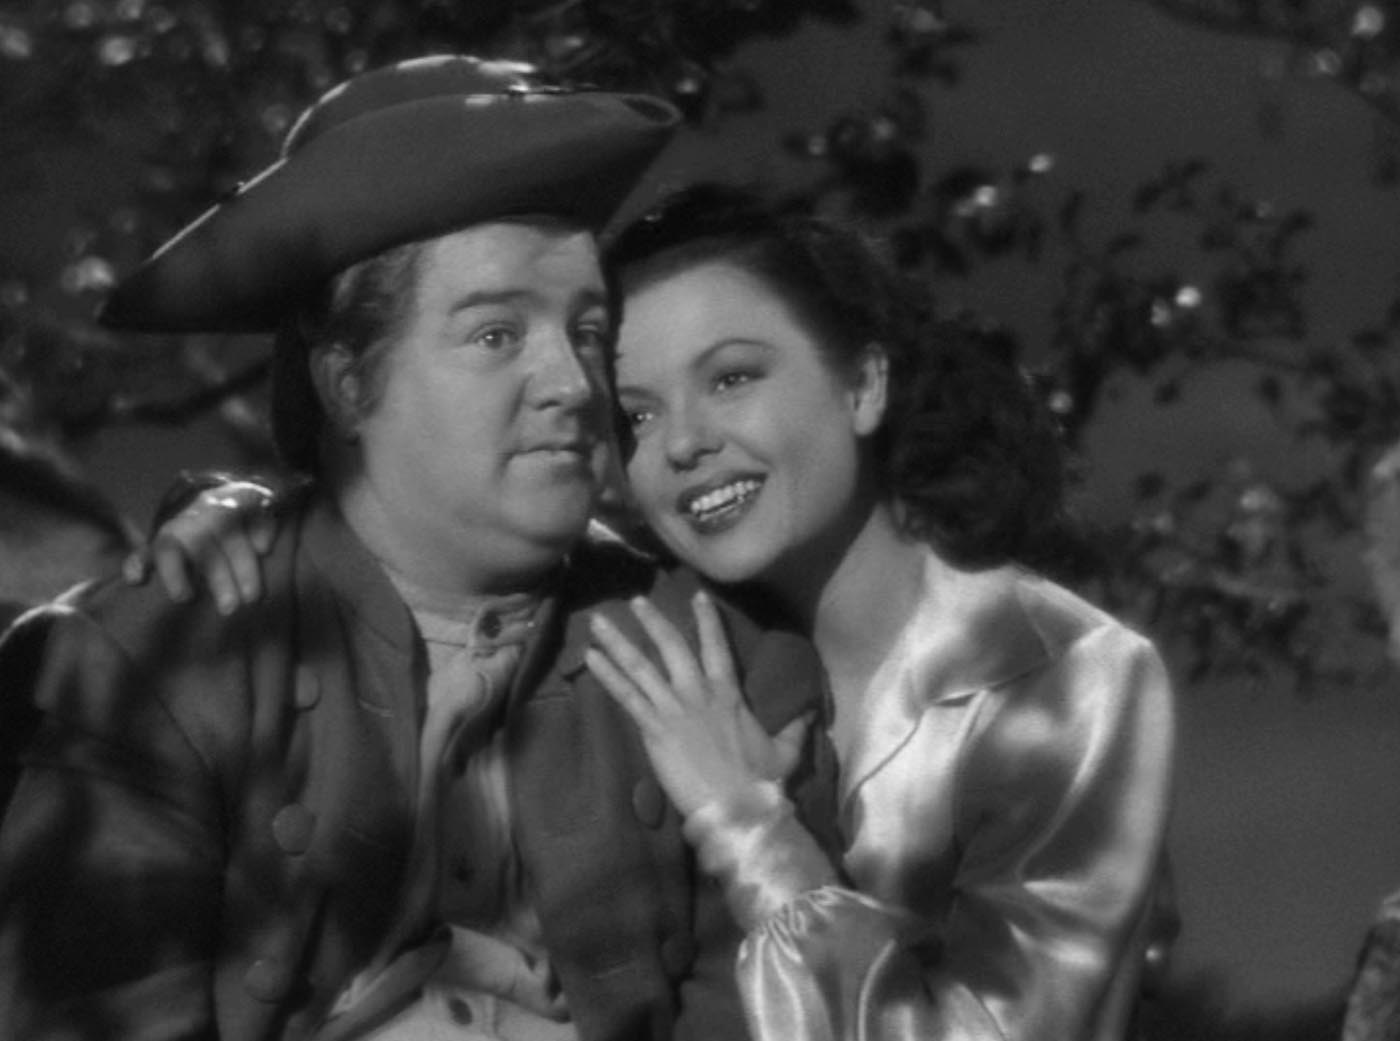 Lou Costello and Marjorie Reynolds in The Time of Their Lives (1946)